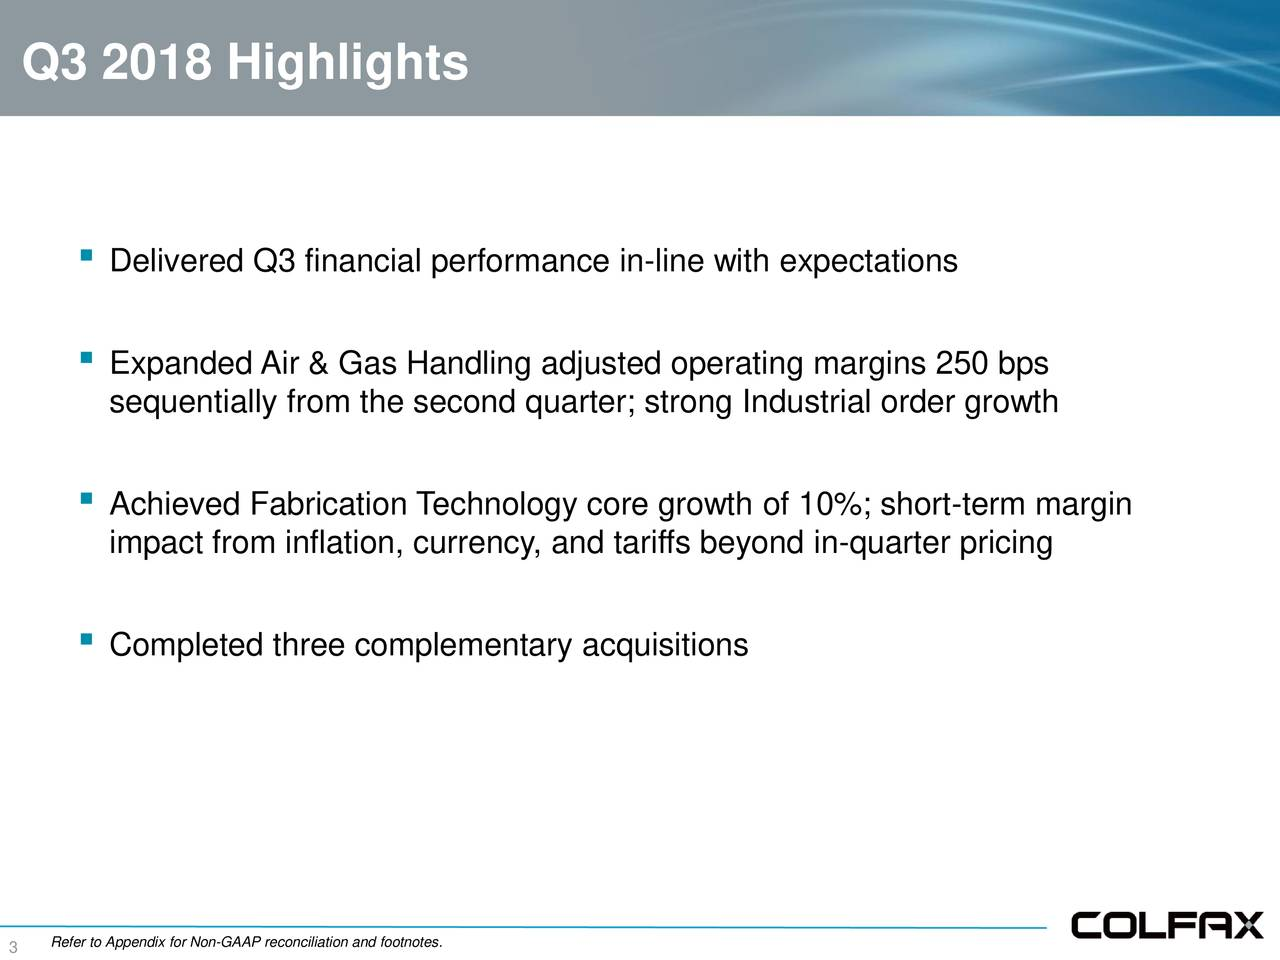 ▪ Delivered Q3 financial performance in-line with expectations ▪ Expanded Air & Gas Handling adjusted operating margins 250 bps sequentially from the second quarter; strong Industrial order growth ▪ Achieved Fabrication Technology core growth of 10%; short-term margin impact from inflation, currency, and tariffs beyond in-quarter pricing ▪ Completed three complementary acquisitions